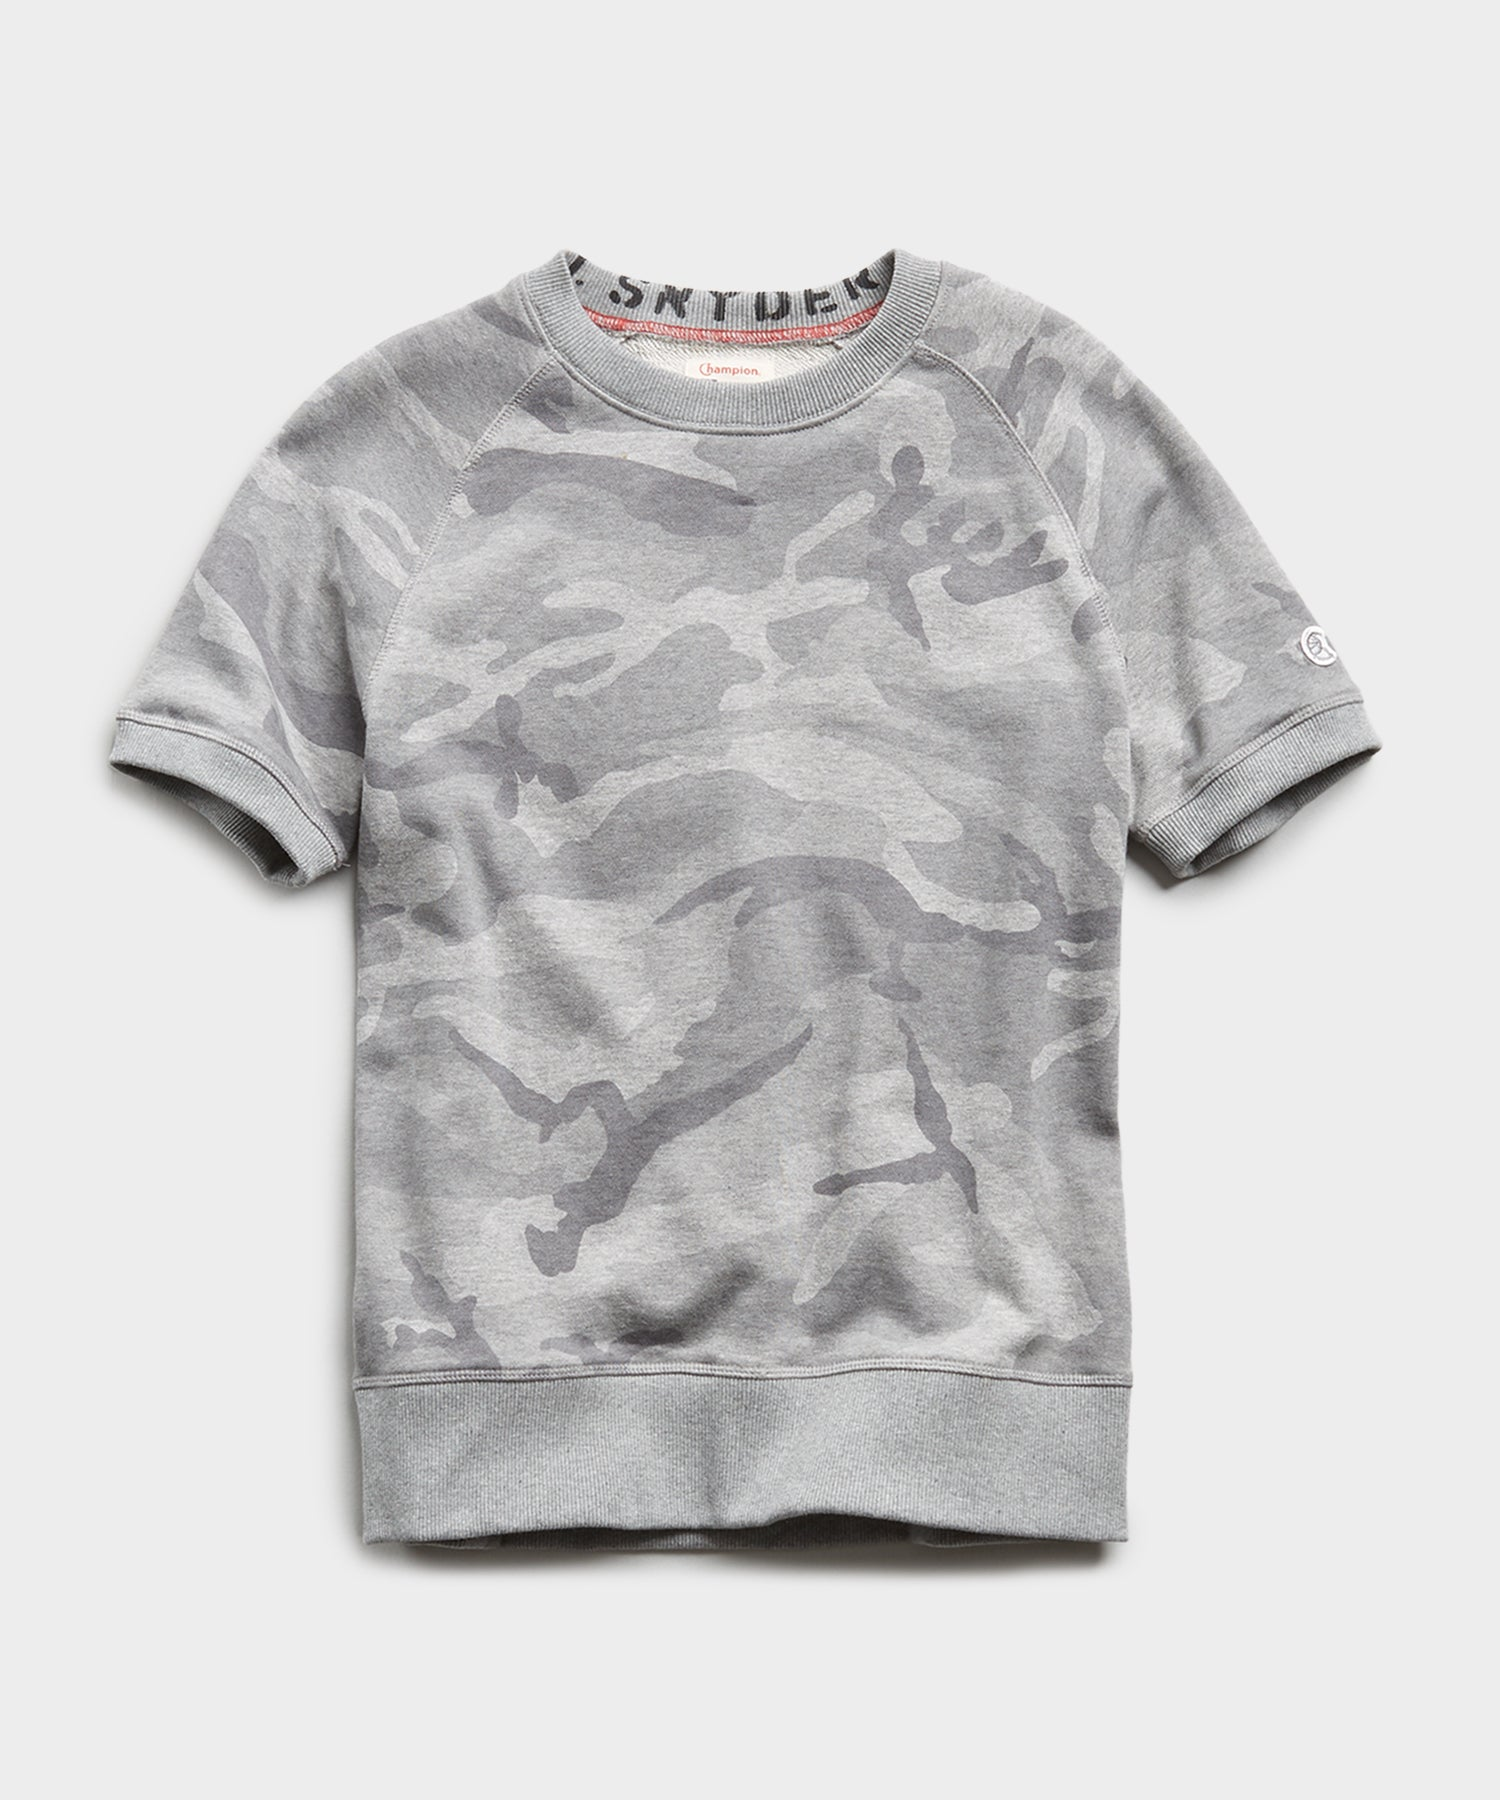 Camo Short Sleeve Sweatshirt in Heather Grey